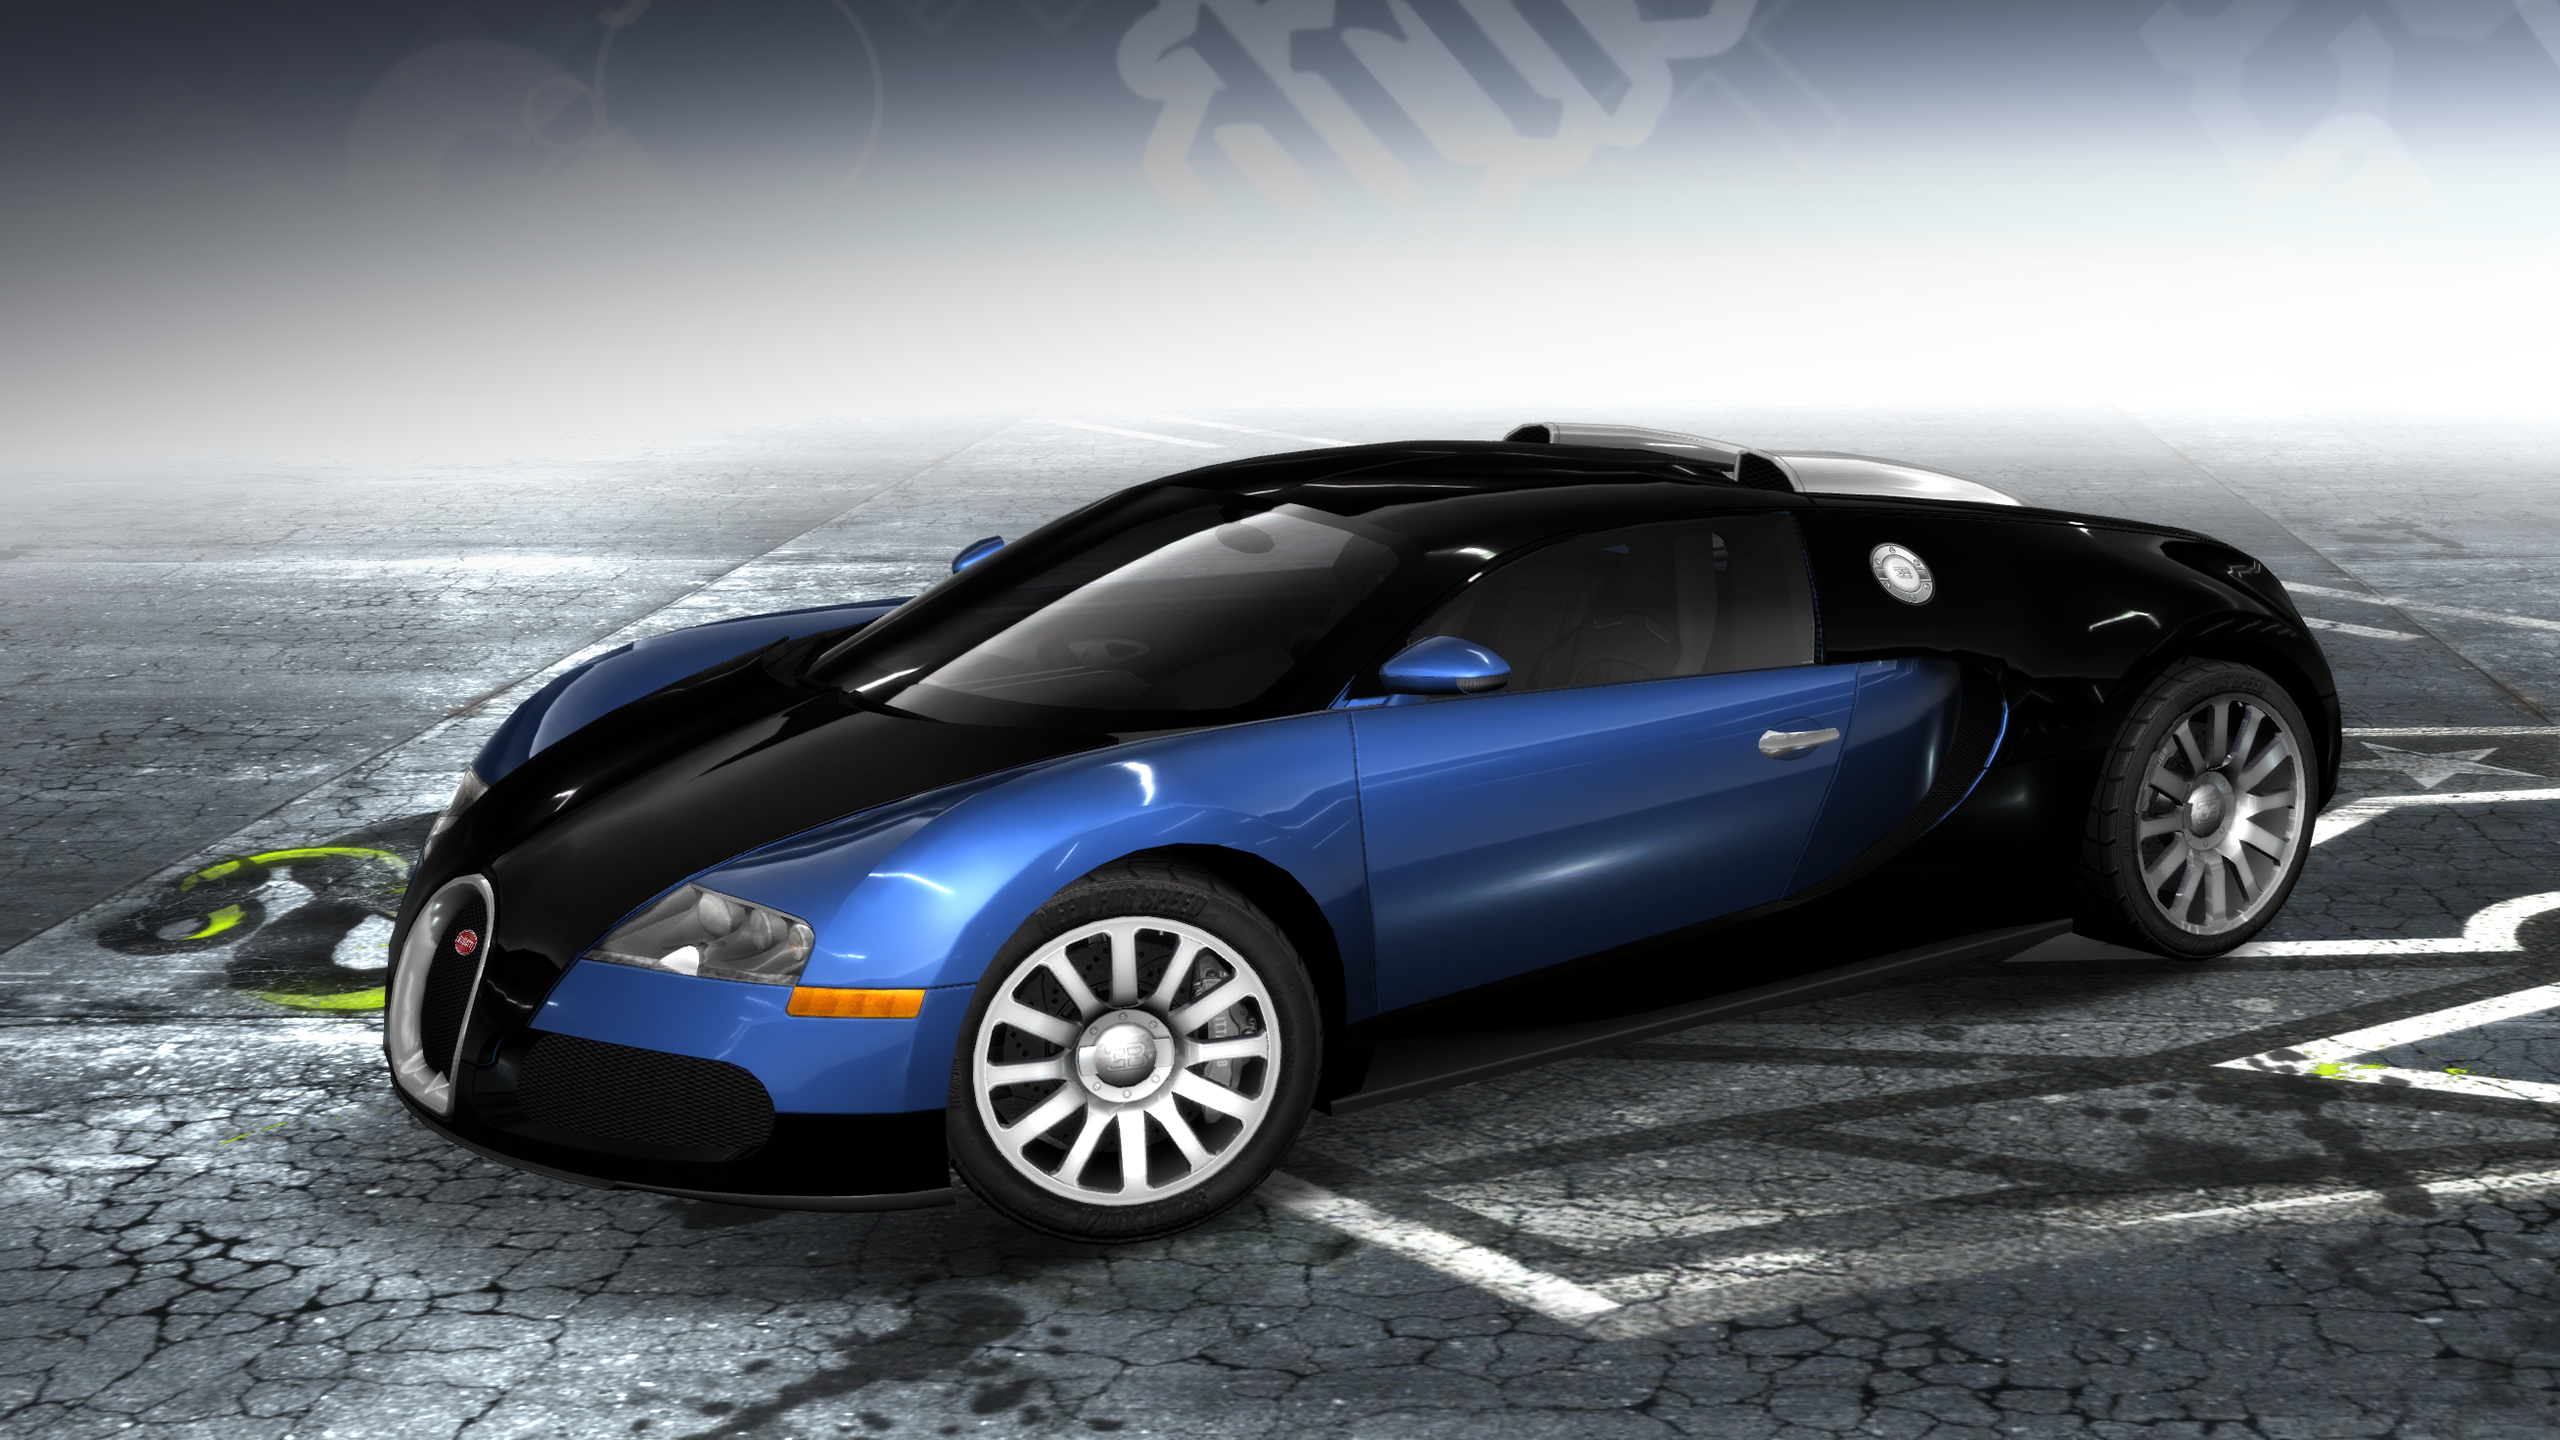 Bugatti Veyron 16.4 | Need for Speed Wiki | FANDOM powered by Wikia